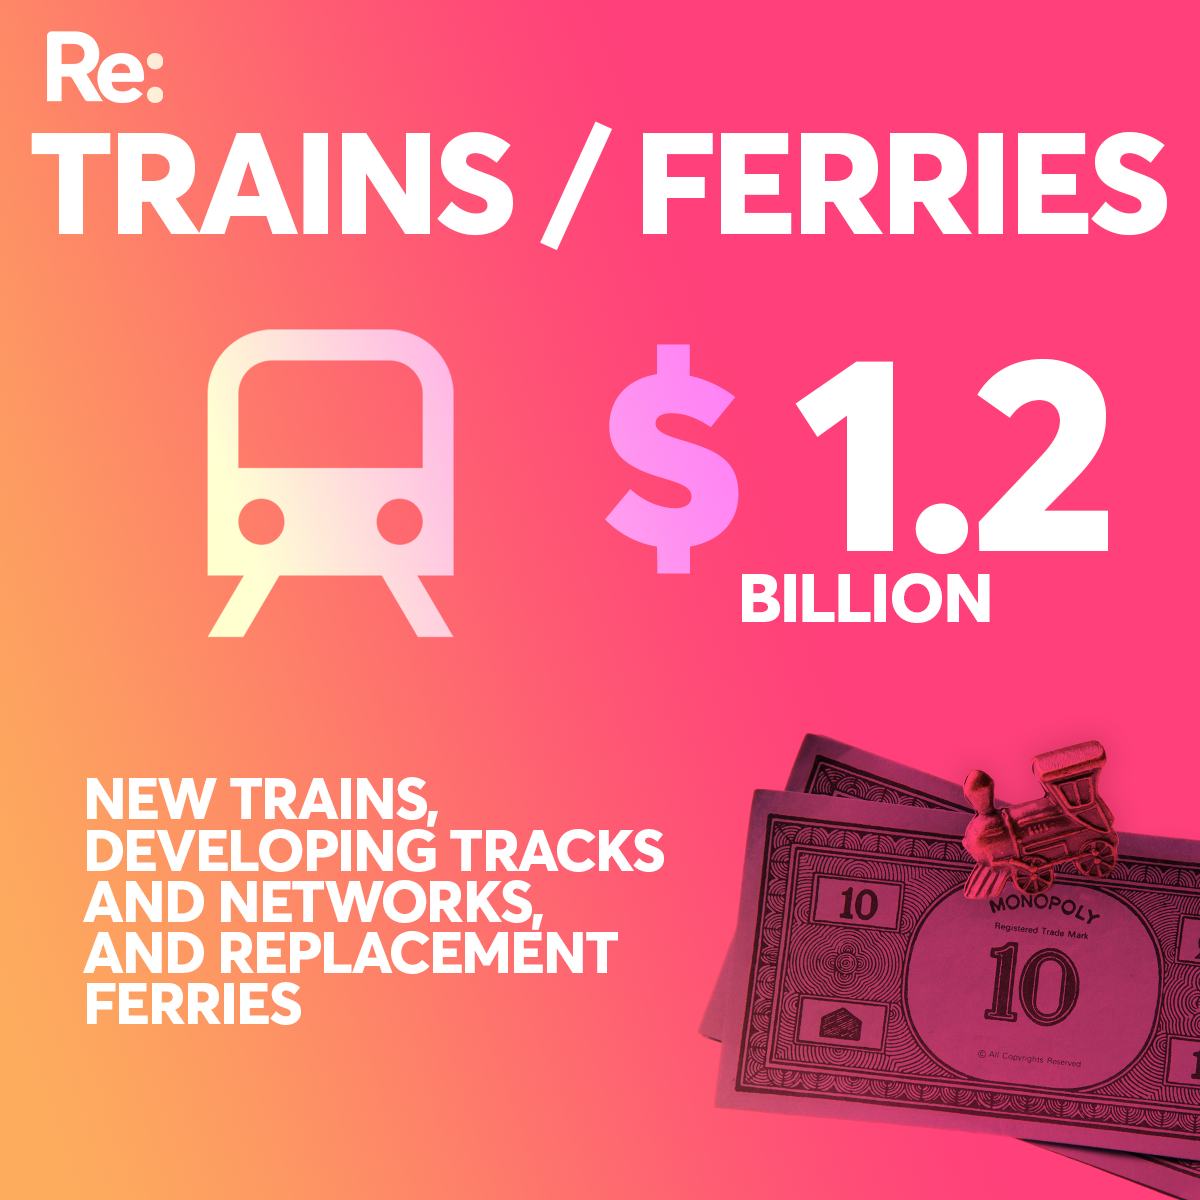 8 2020 BUDGET 10 TRANSPORT TRAINS FERRIES